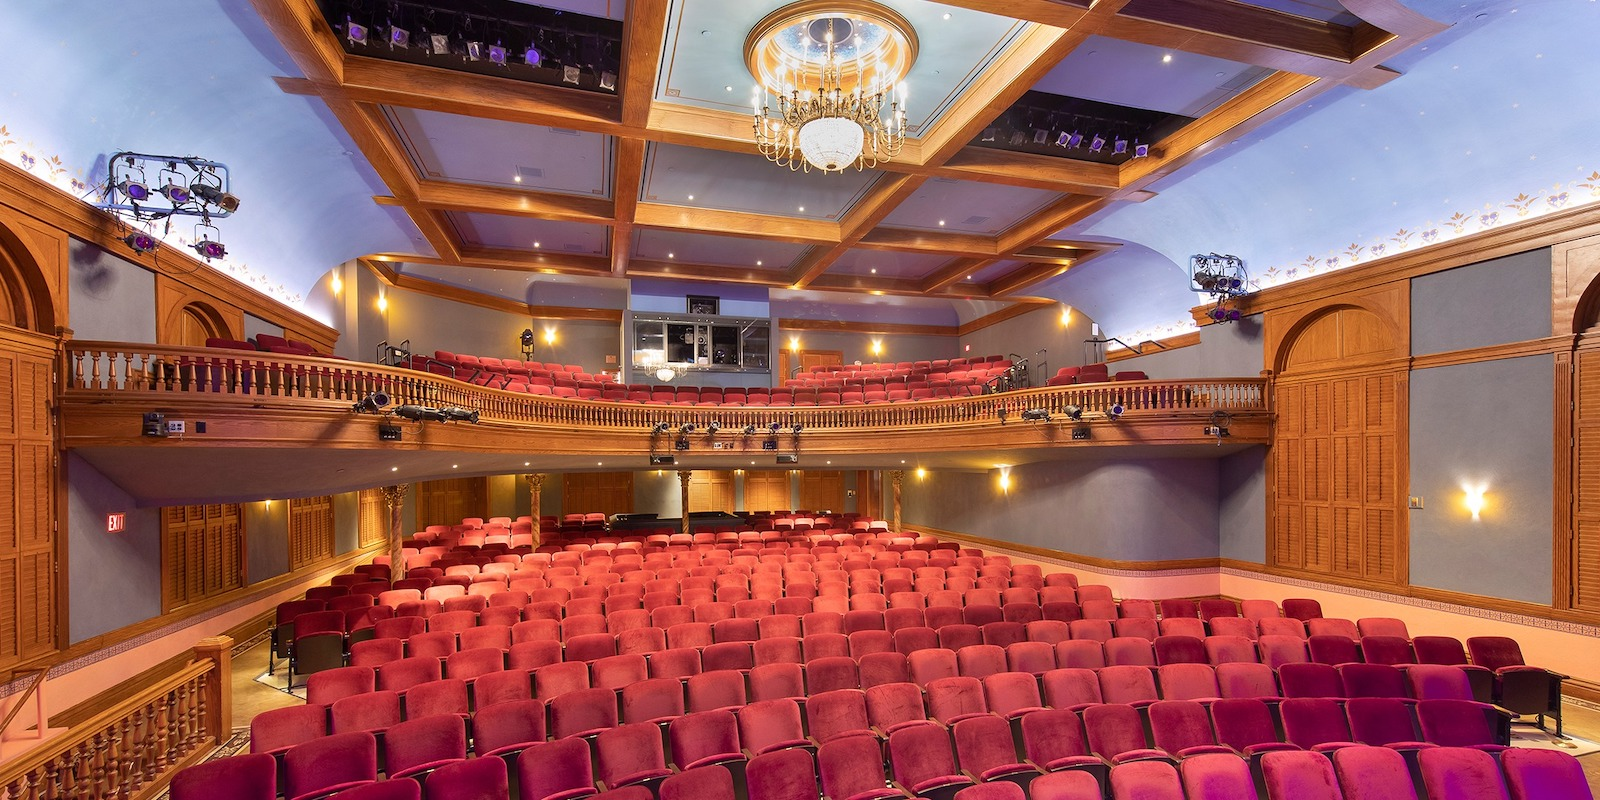 Image of the Wheeler Opera House seating in Colorado